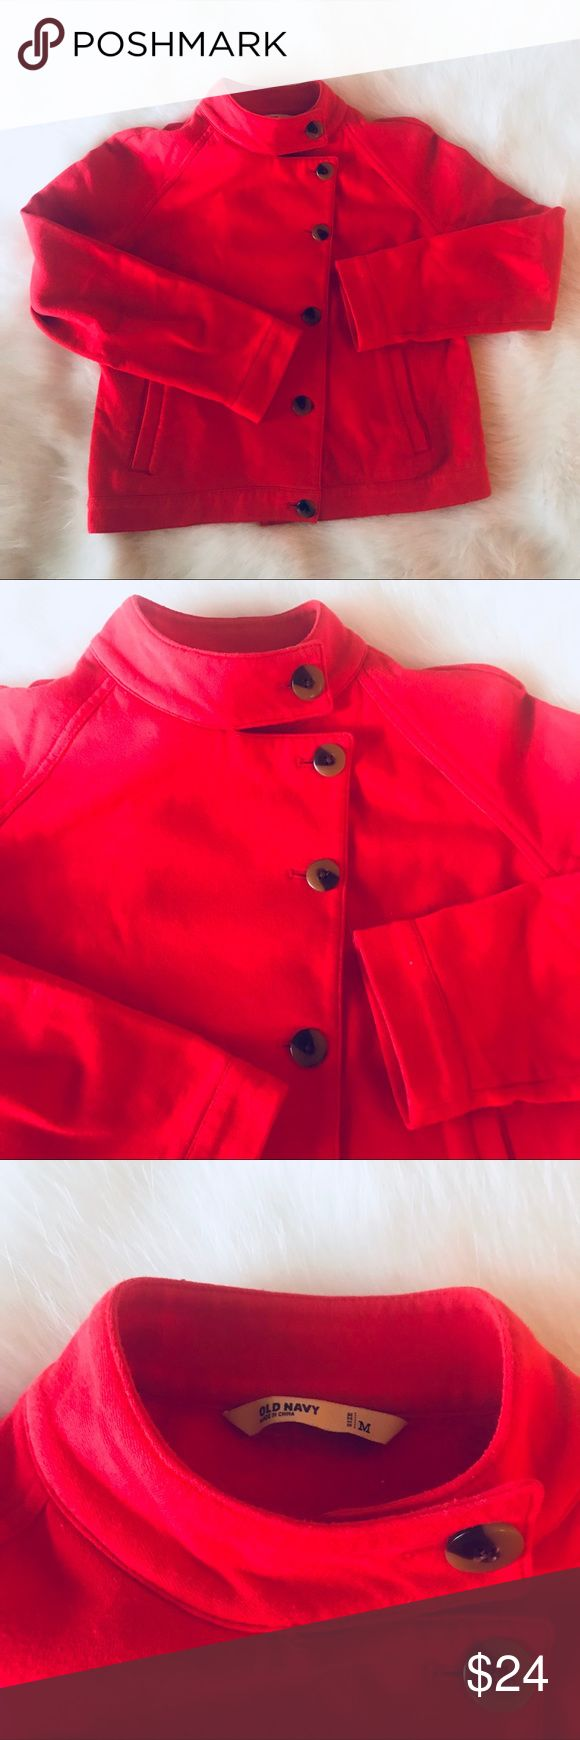 Great RED ORANGE JACKET Adorable With Just The Right Amount Of Texture. Light  Weight, Comfortable